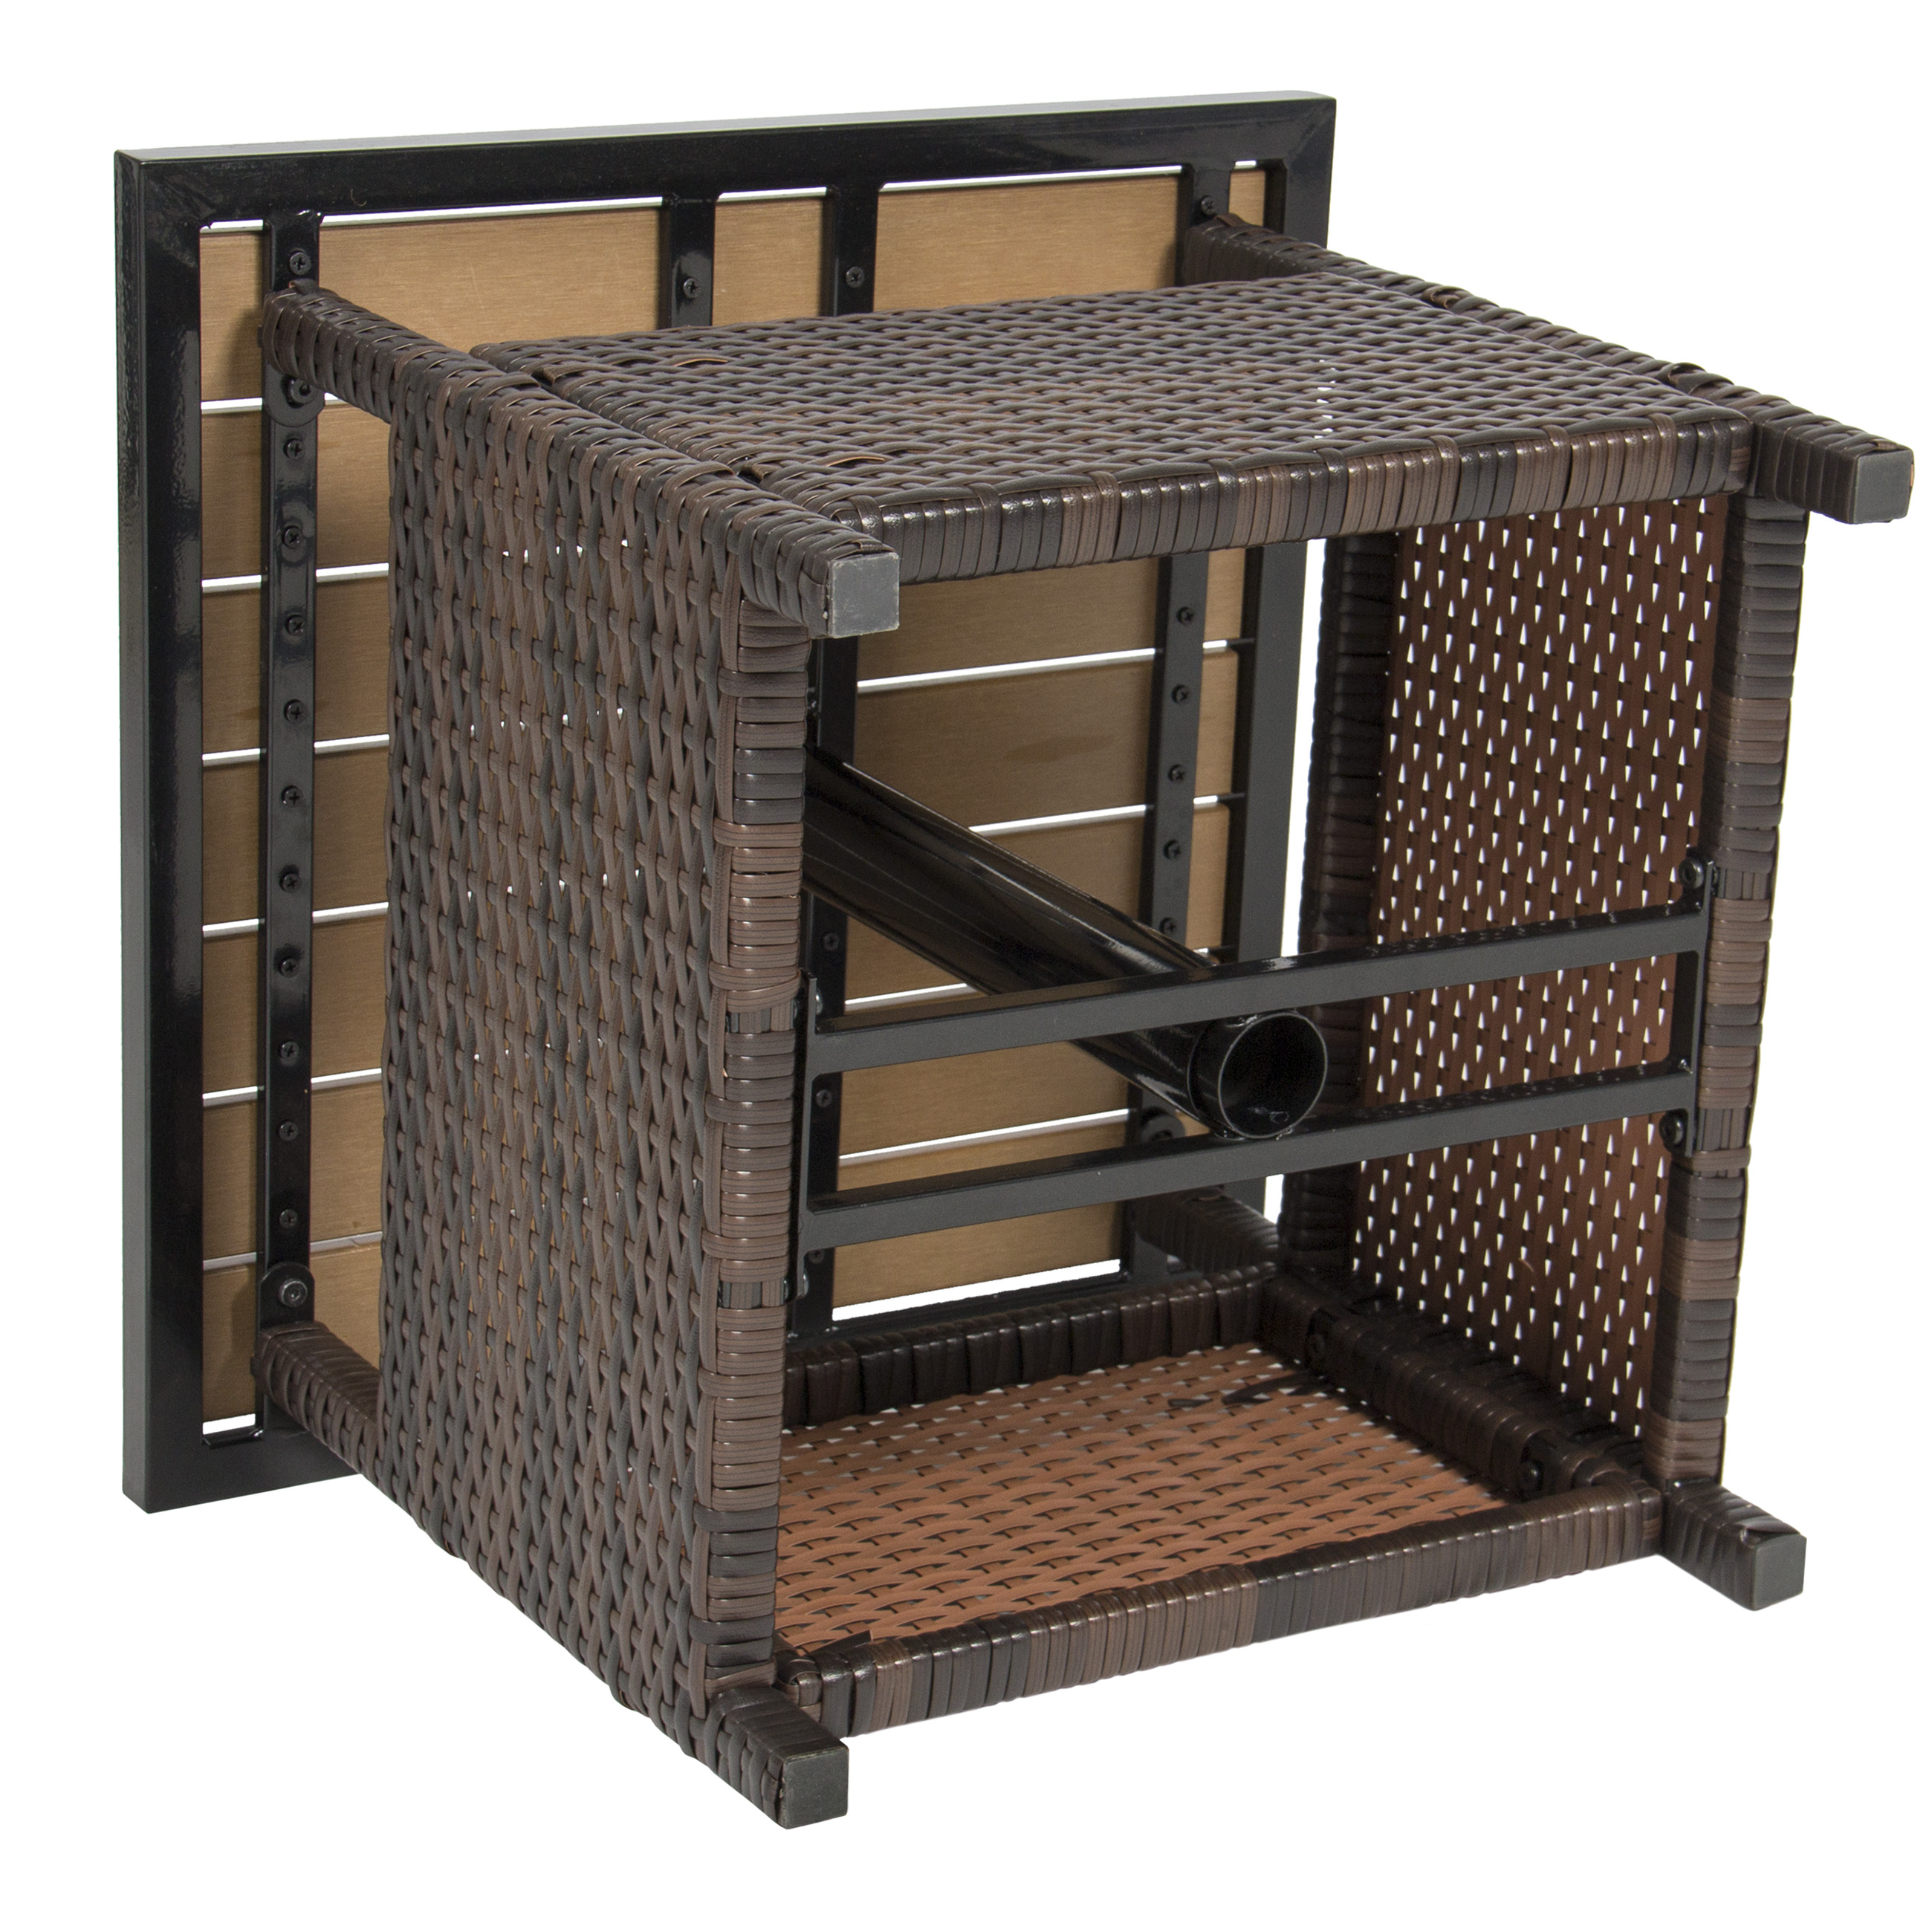 Best Choice Products Outdoor Furniture Wicker Rattan Patio Umbrella Stand  Table For Garden, Pool Deck   Brown   Walmart.com